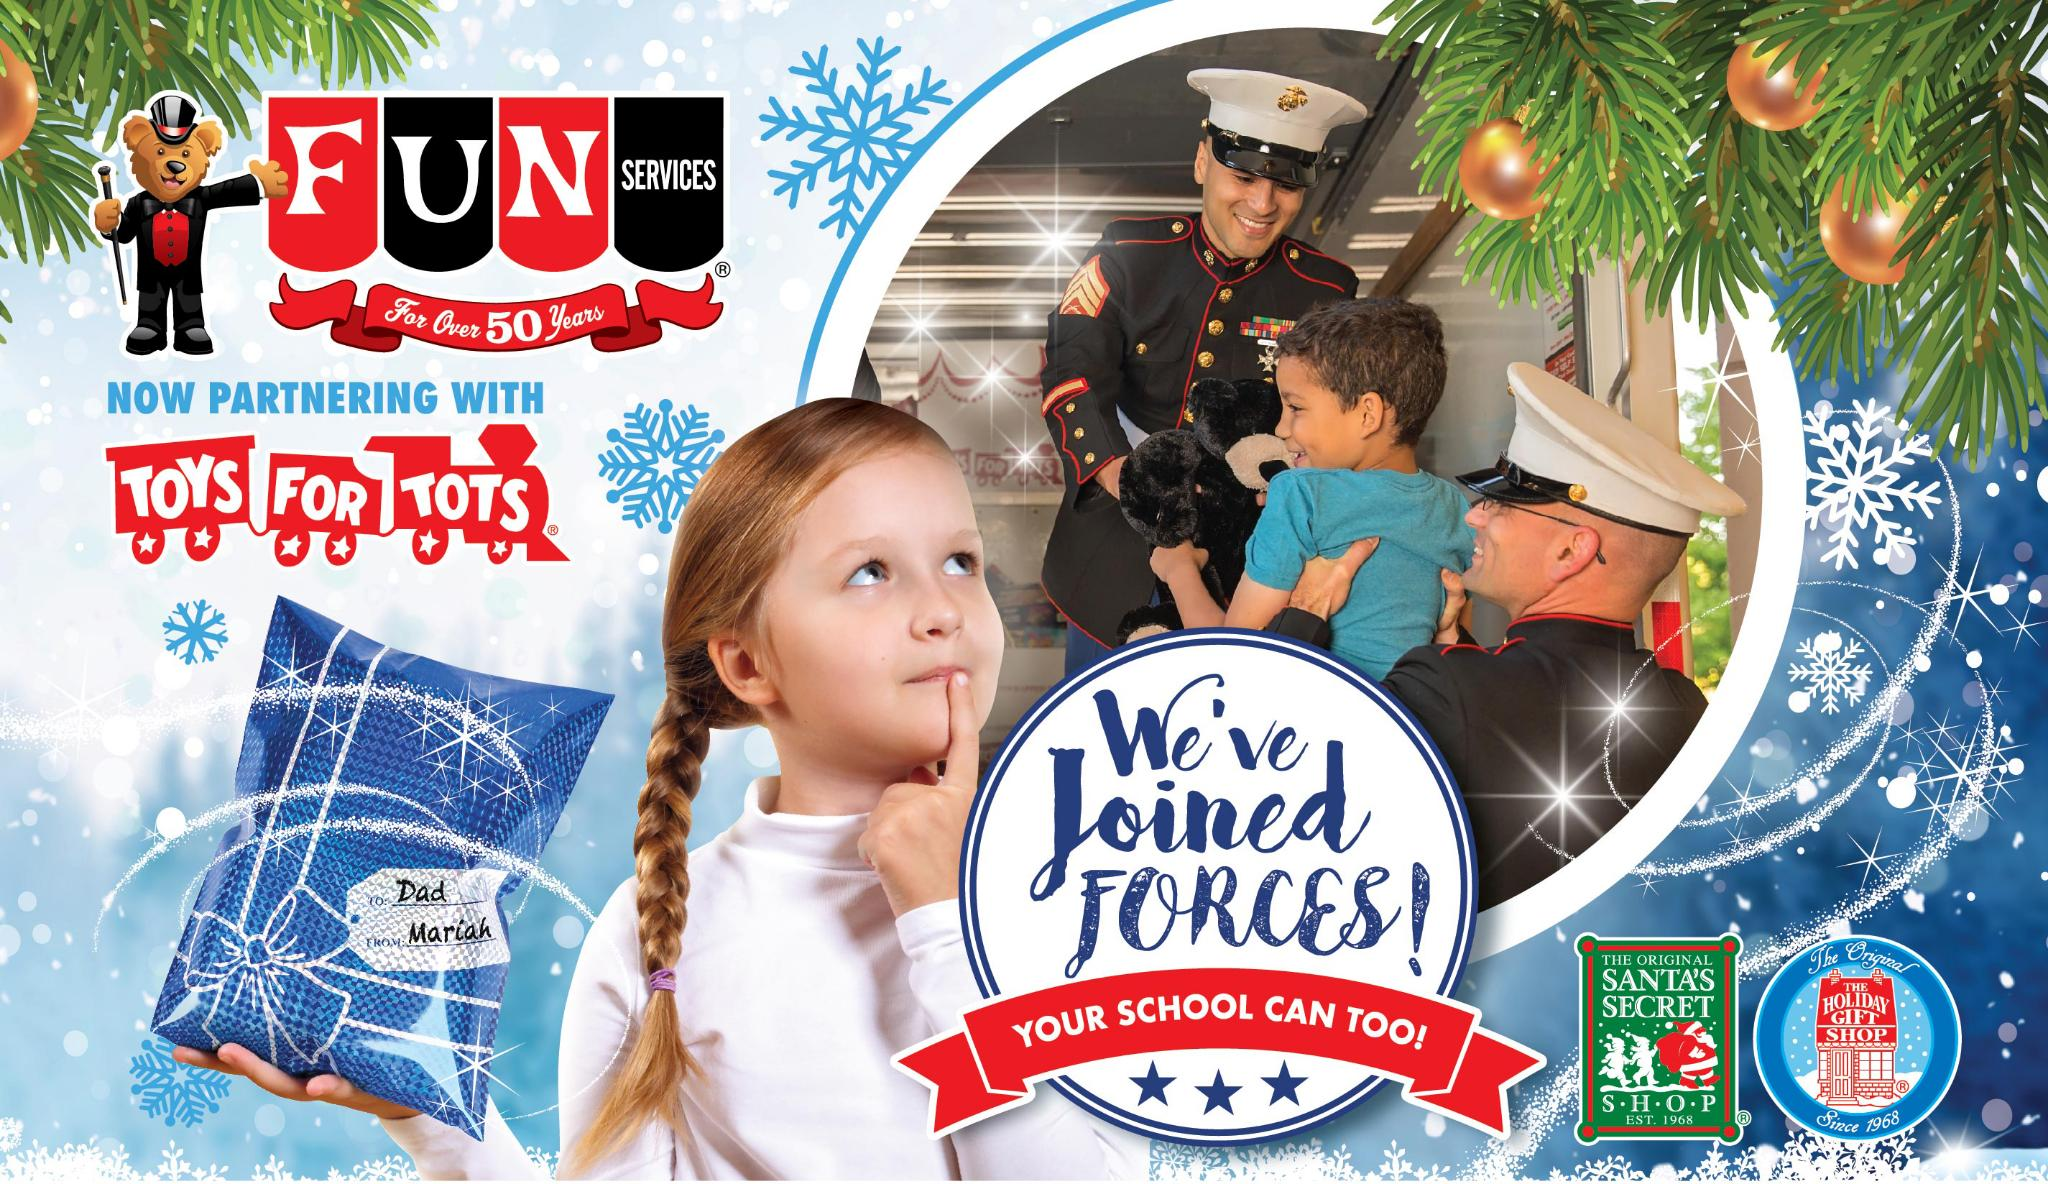 Fun Services Holiday Gift Shop now partnering with Toys for Tots